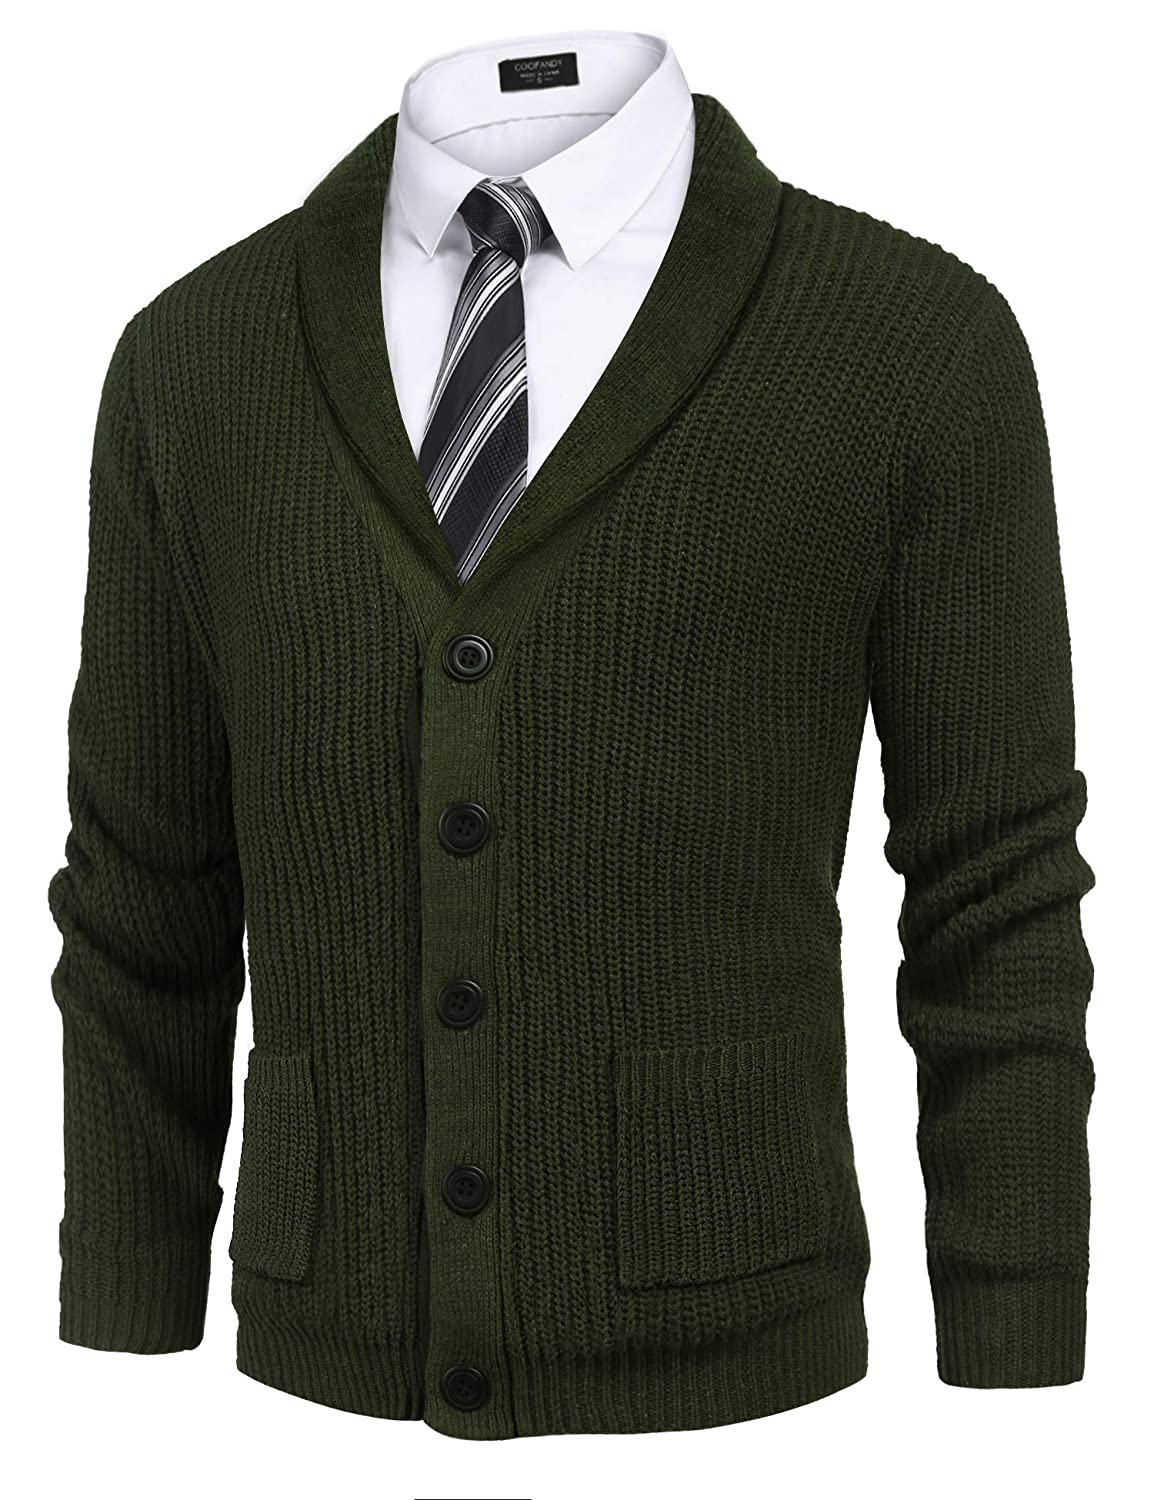 COOFADNY Mens Shawl Collar Cardigan Sweaters Cable Knit